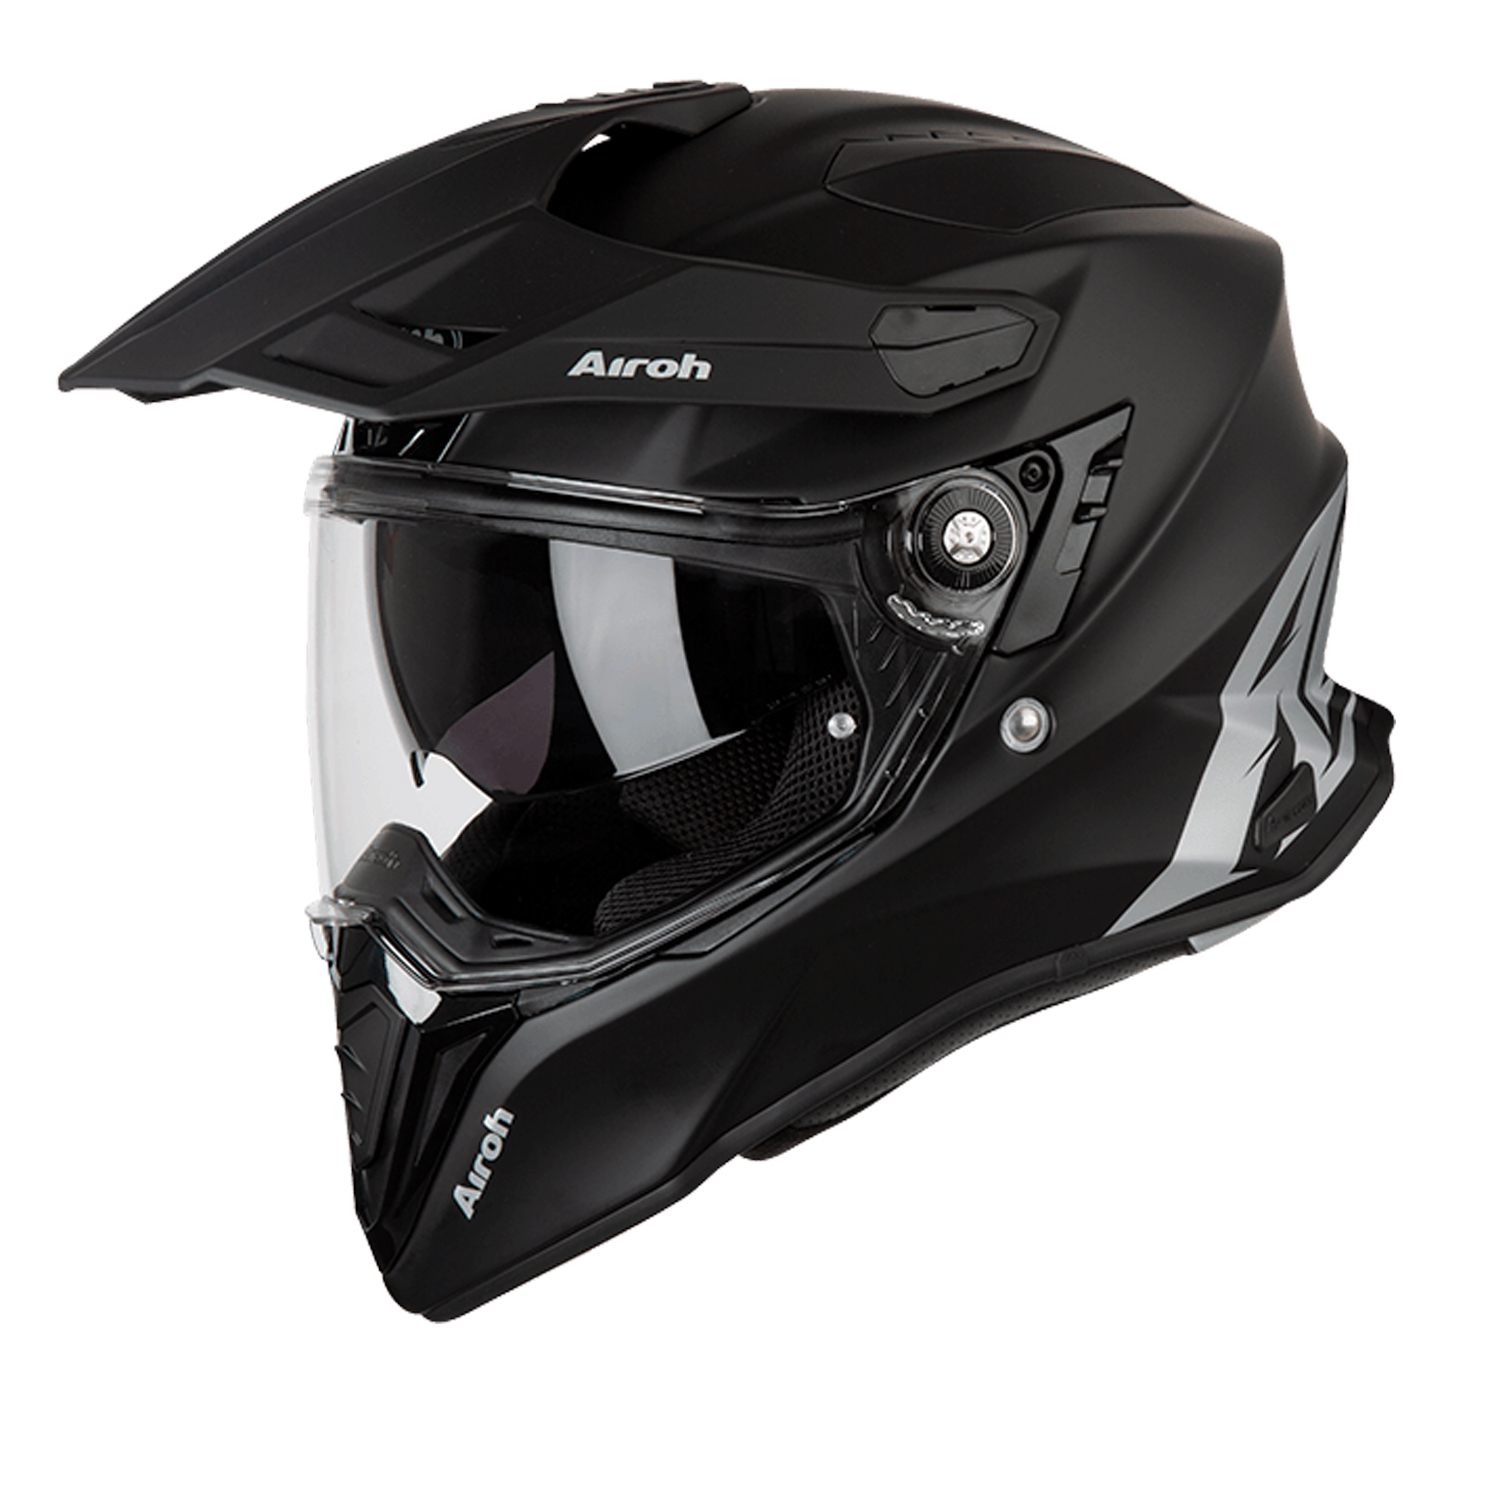 Casco helmet Airoh Full Face Integrale Commander Color Black Matt Enduro Touring